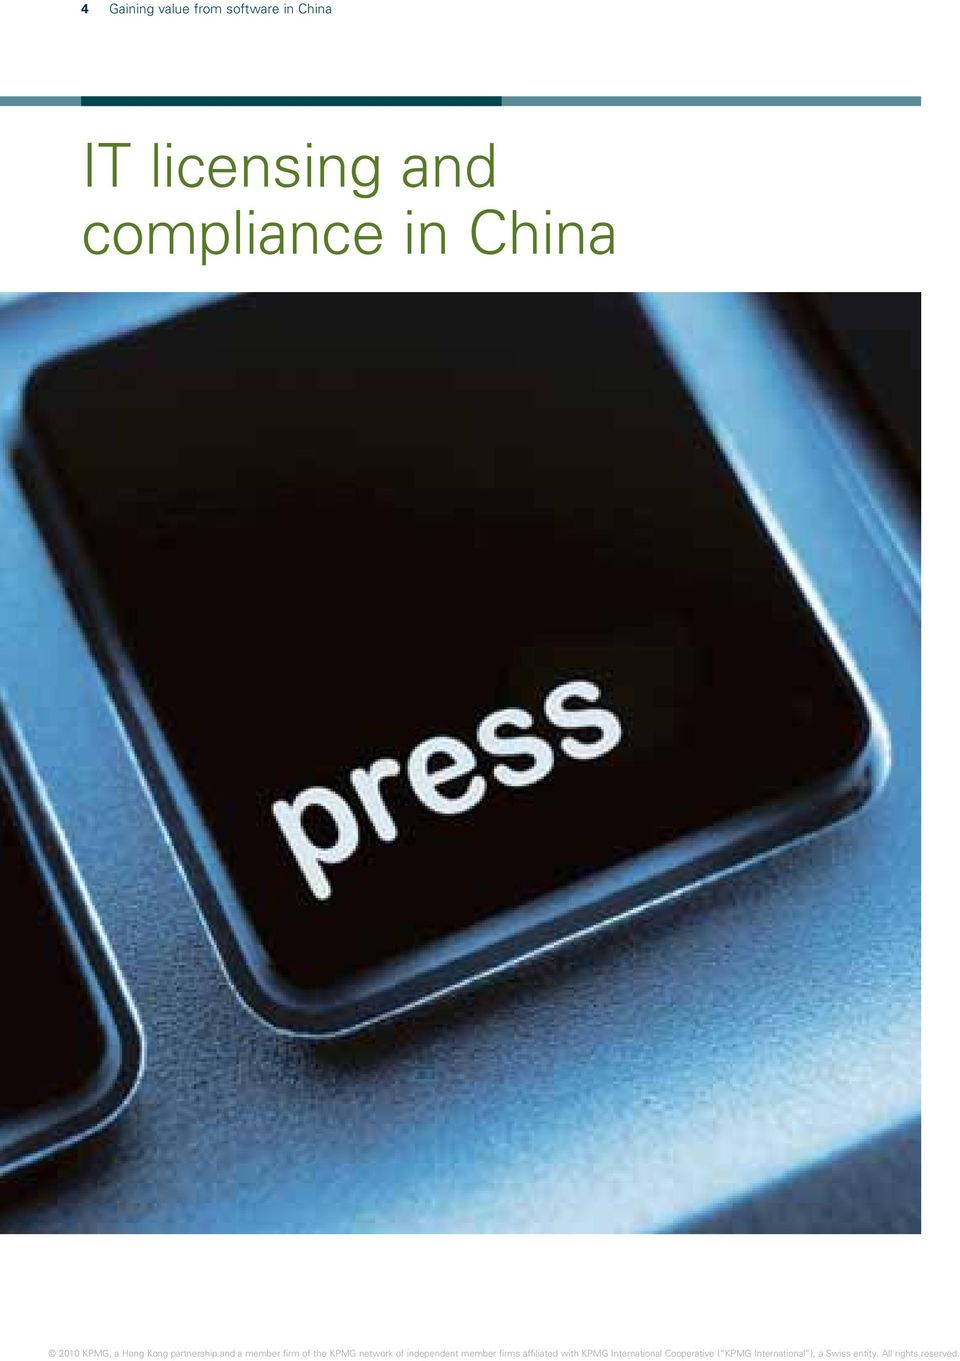 China IT licensing